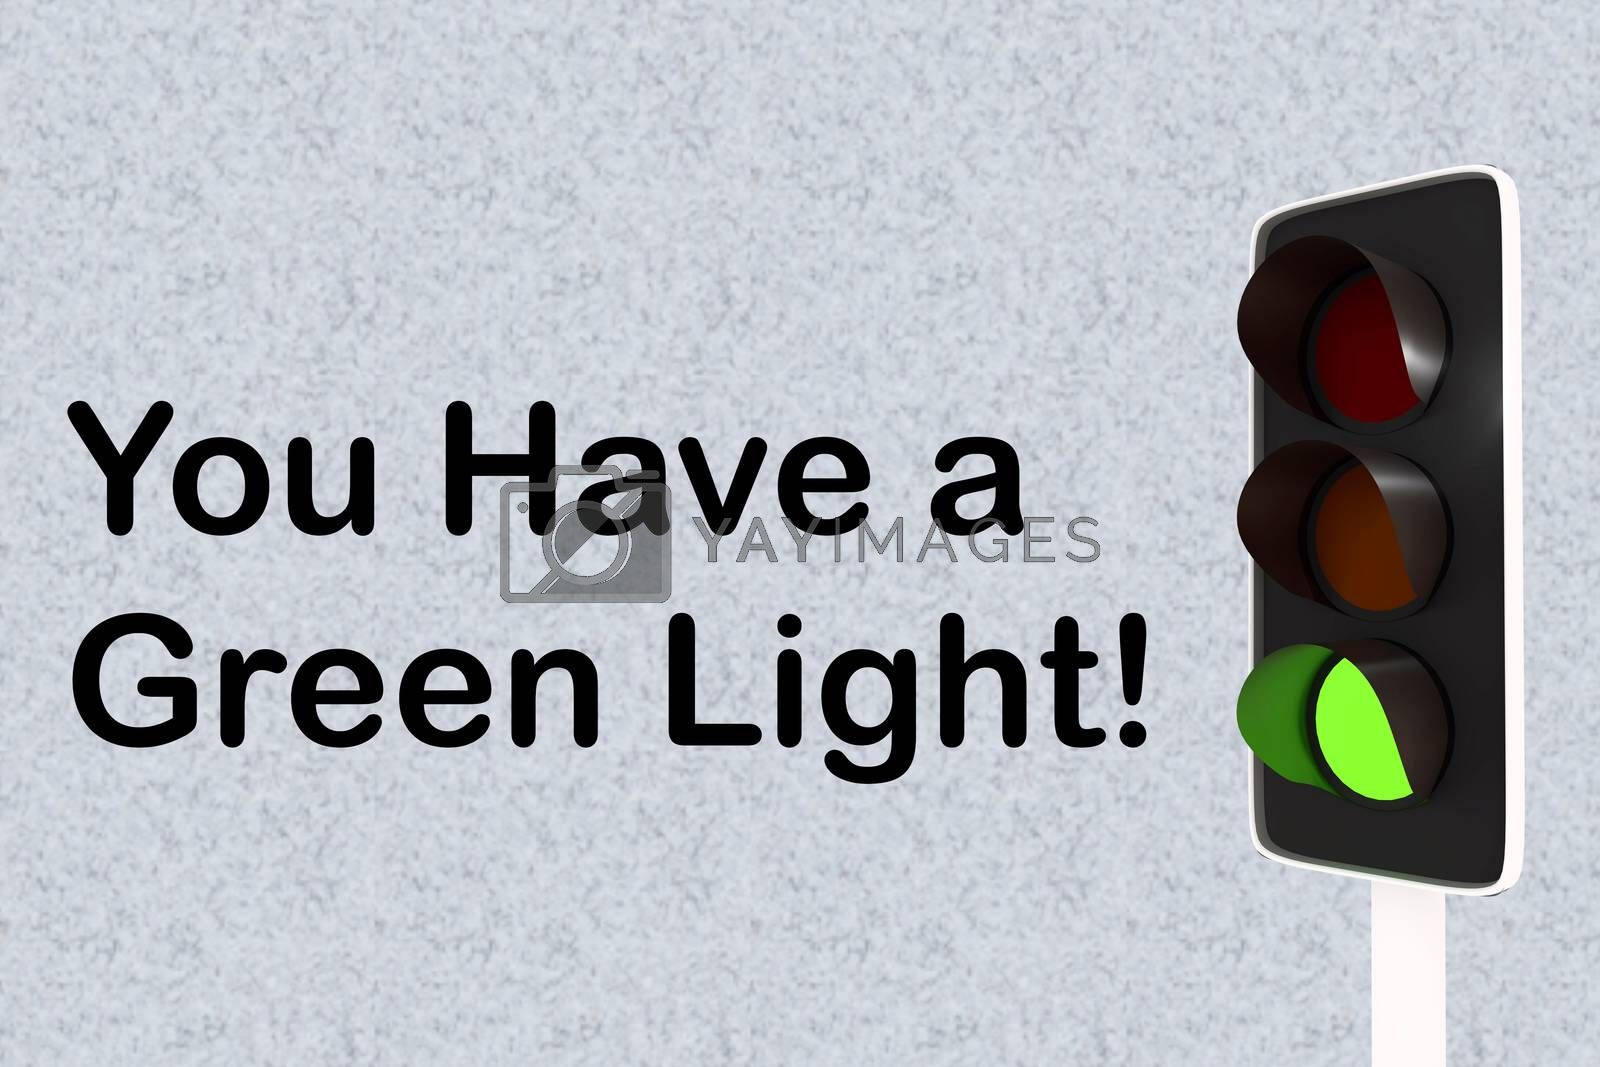 3D illustration of green traffic light, along with encouraging text You Have a Green Light!